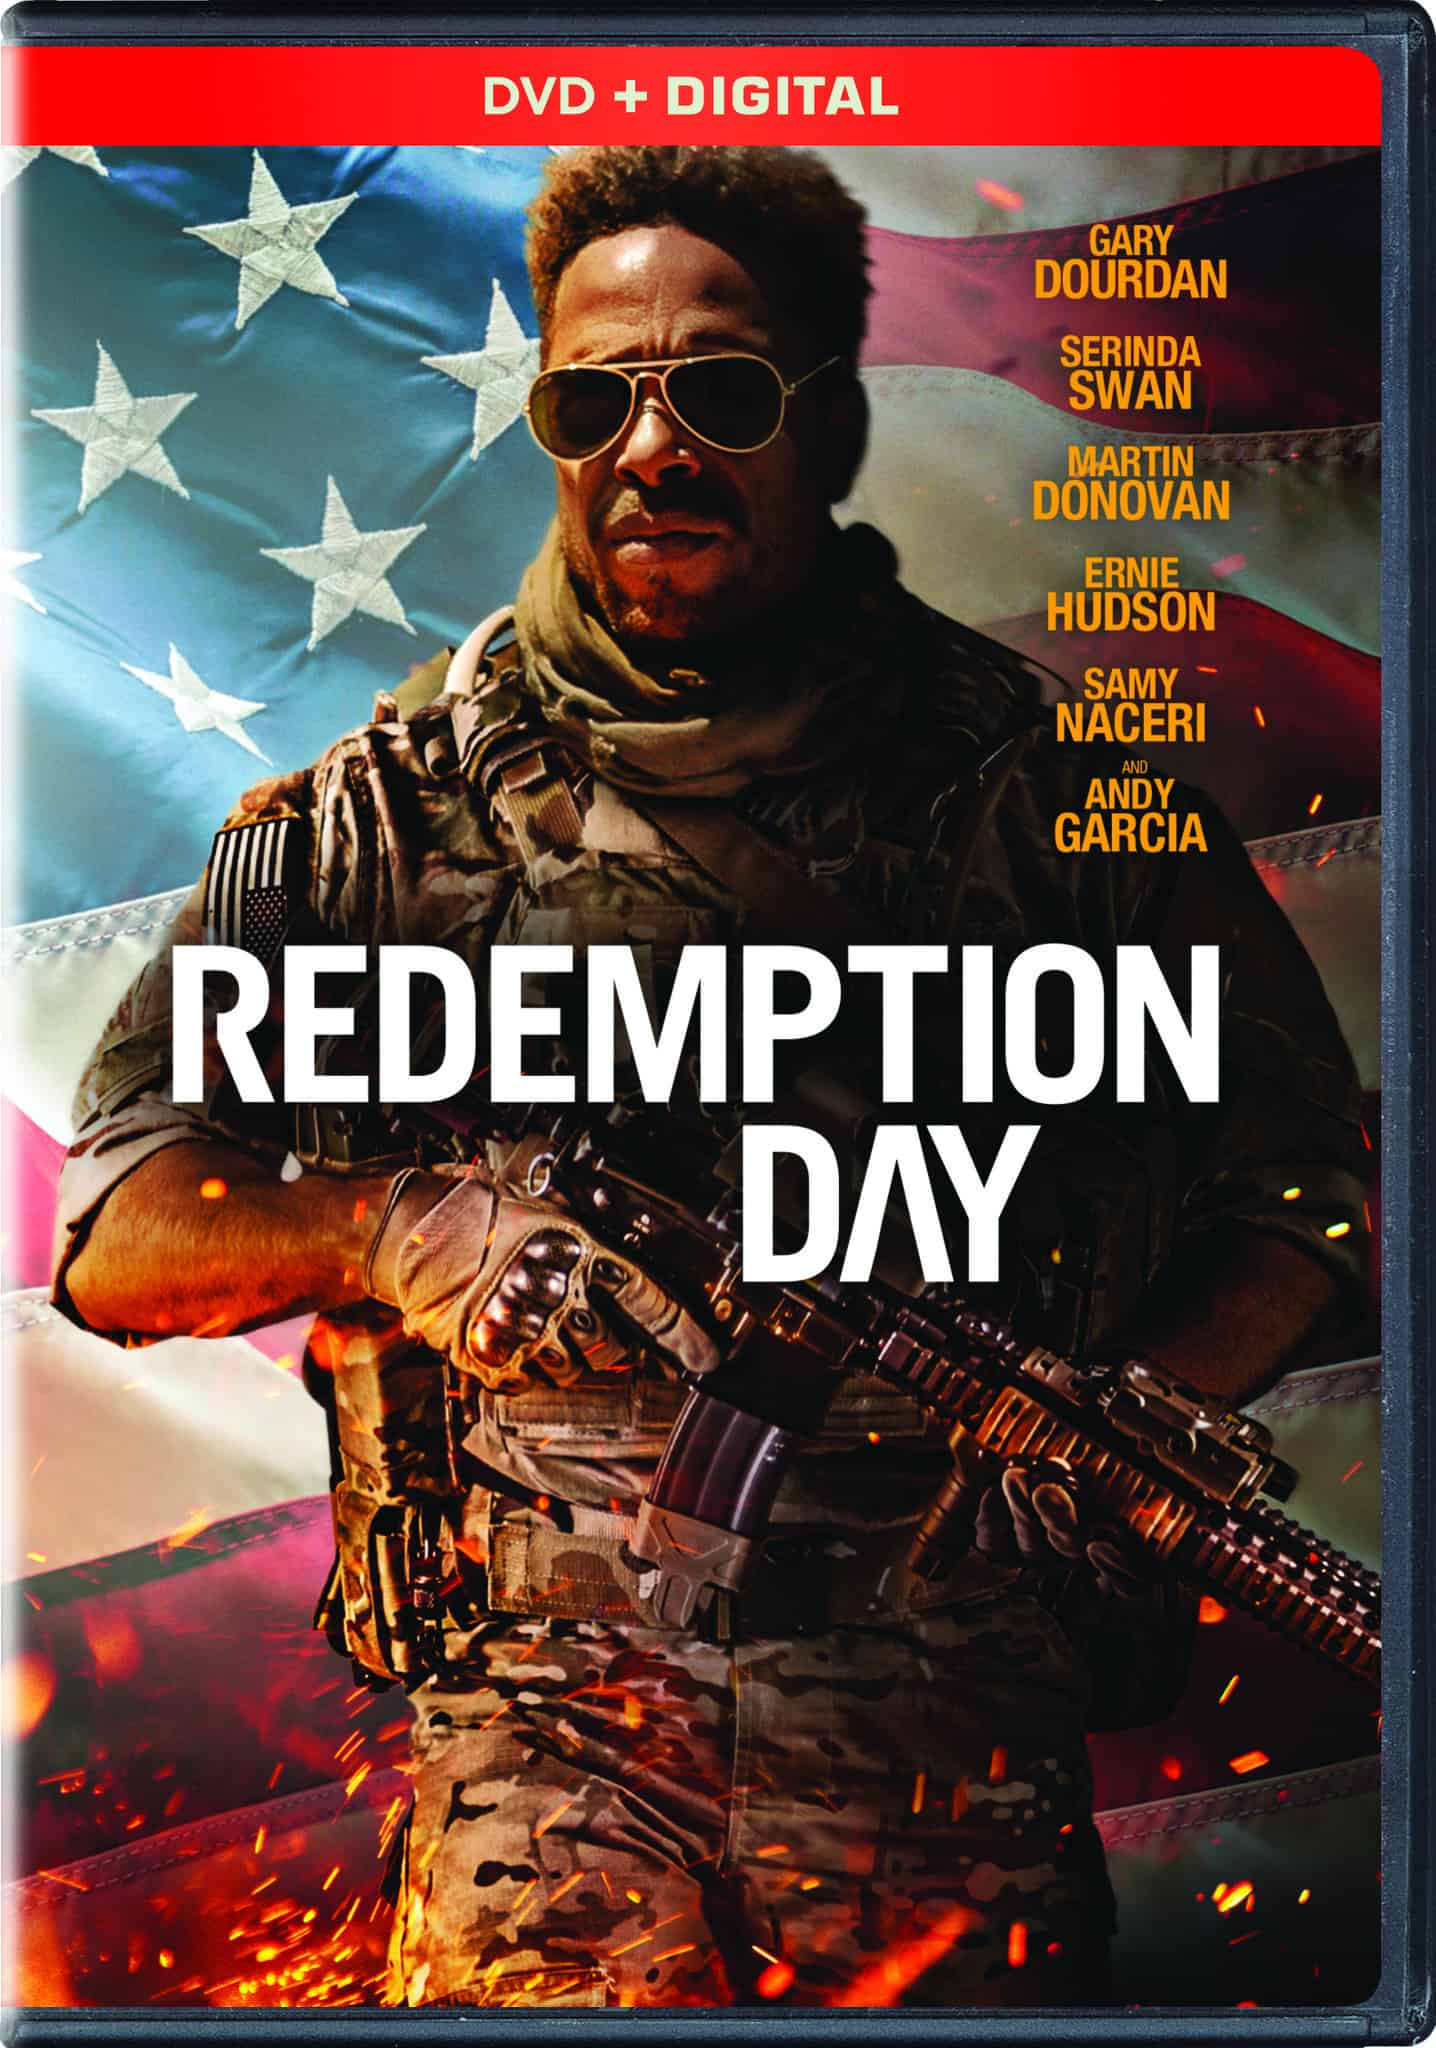 redemption day february 2021 dvd